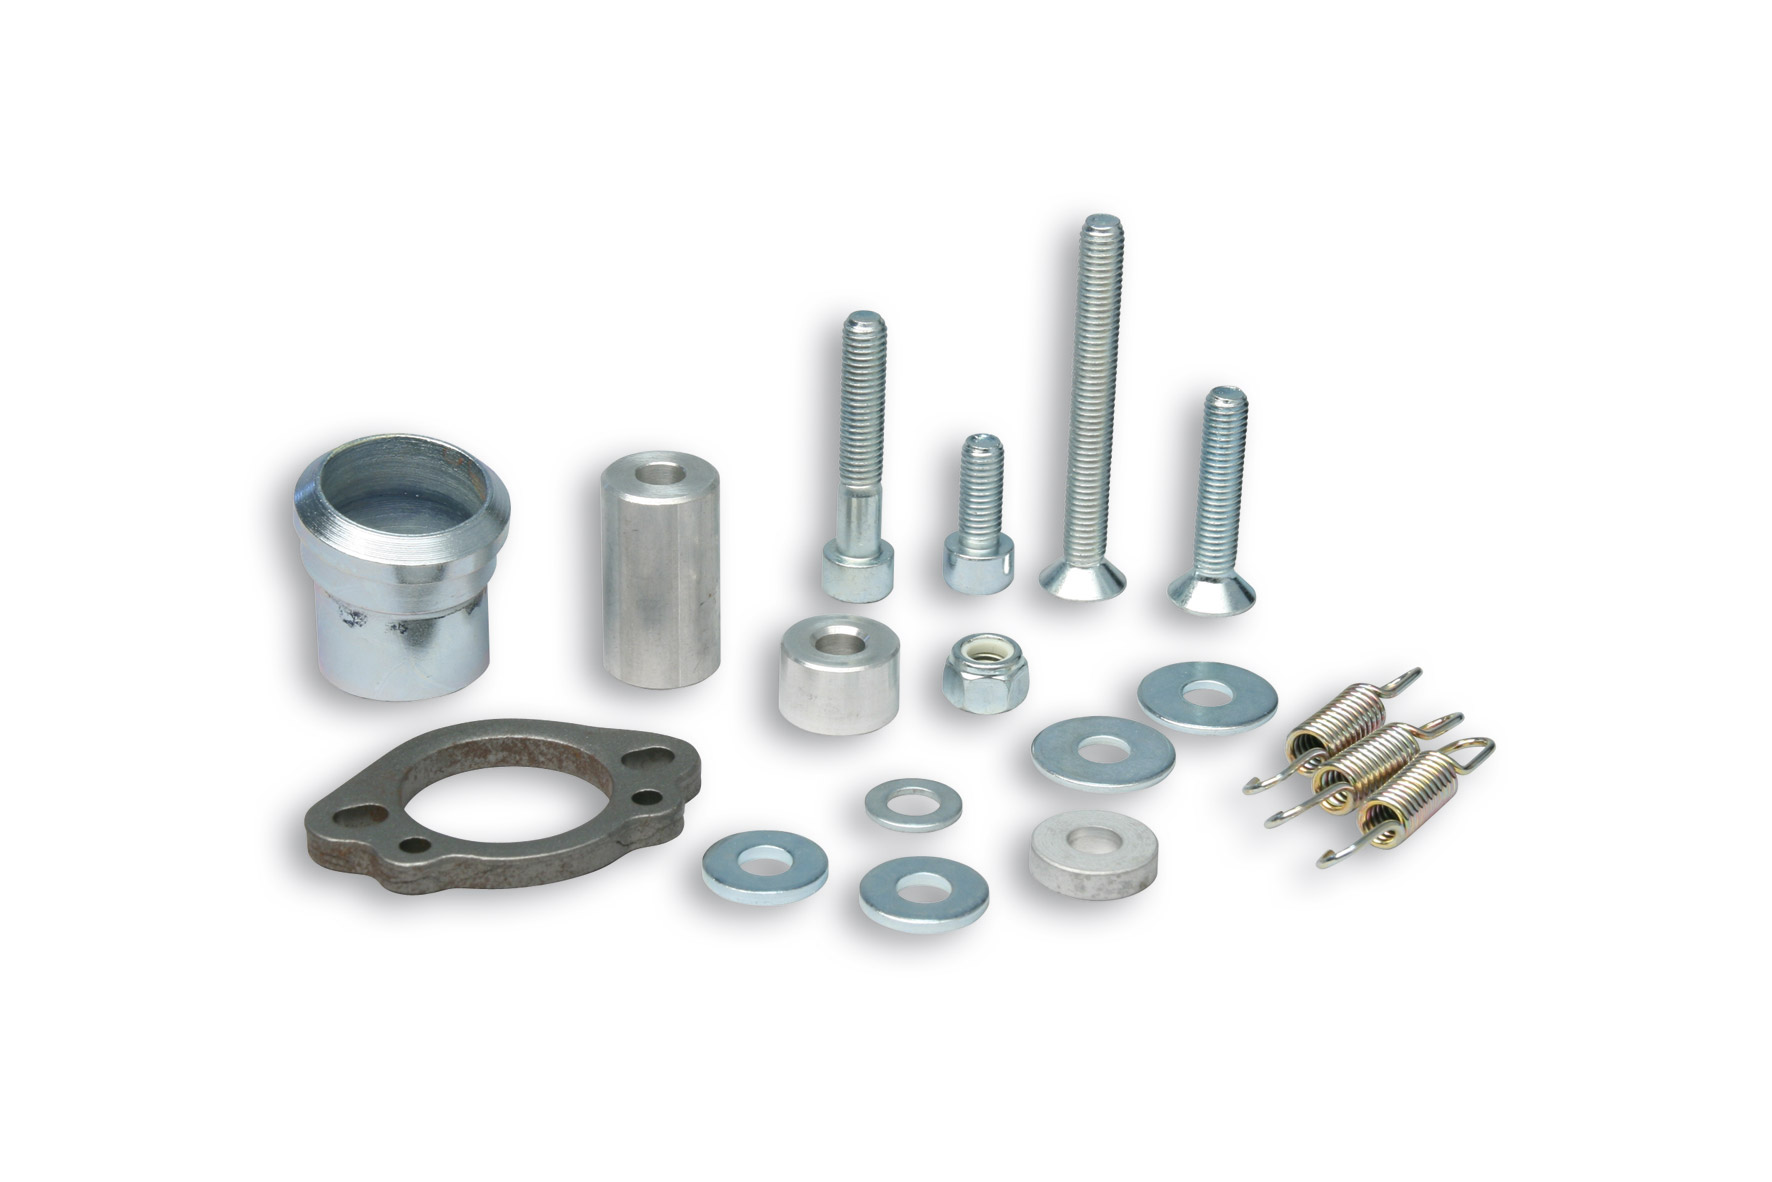 CONNECTION/BOLTS KIT for EXHAUST SYS. - Spare part for EXHAUST SYSTEM 32 9027 : out of production